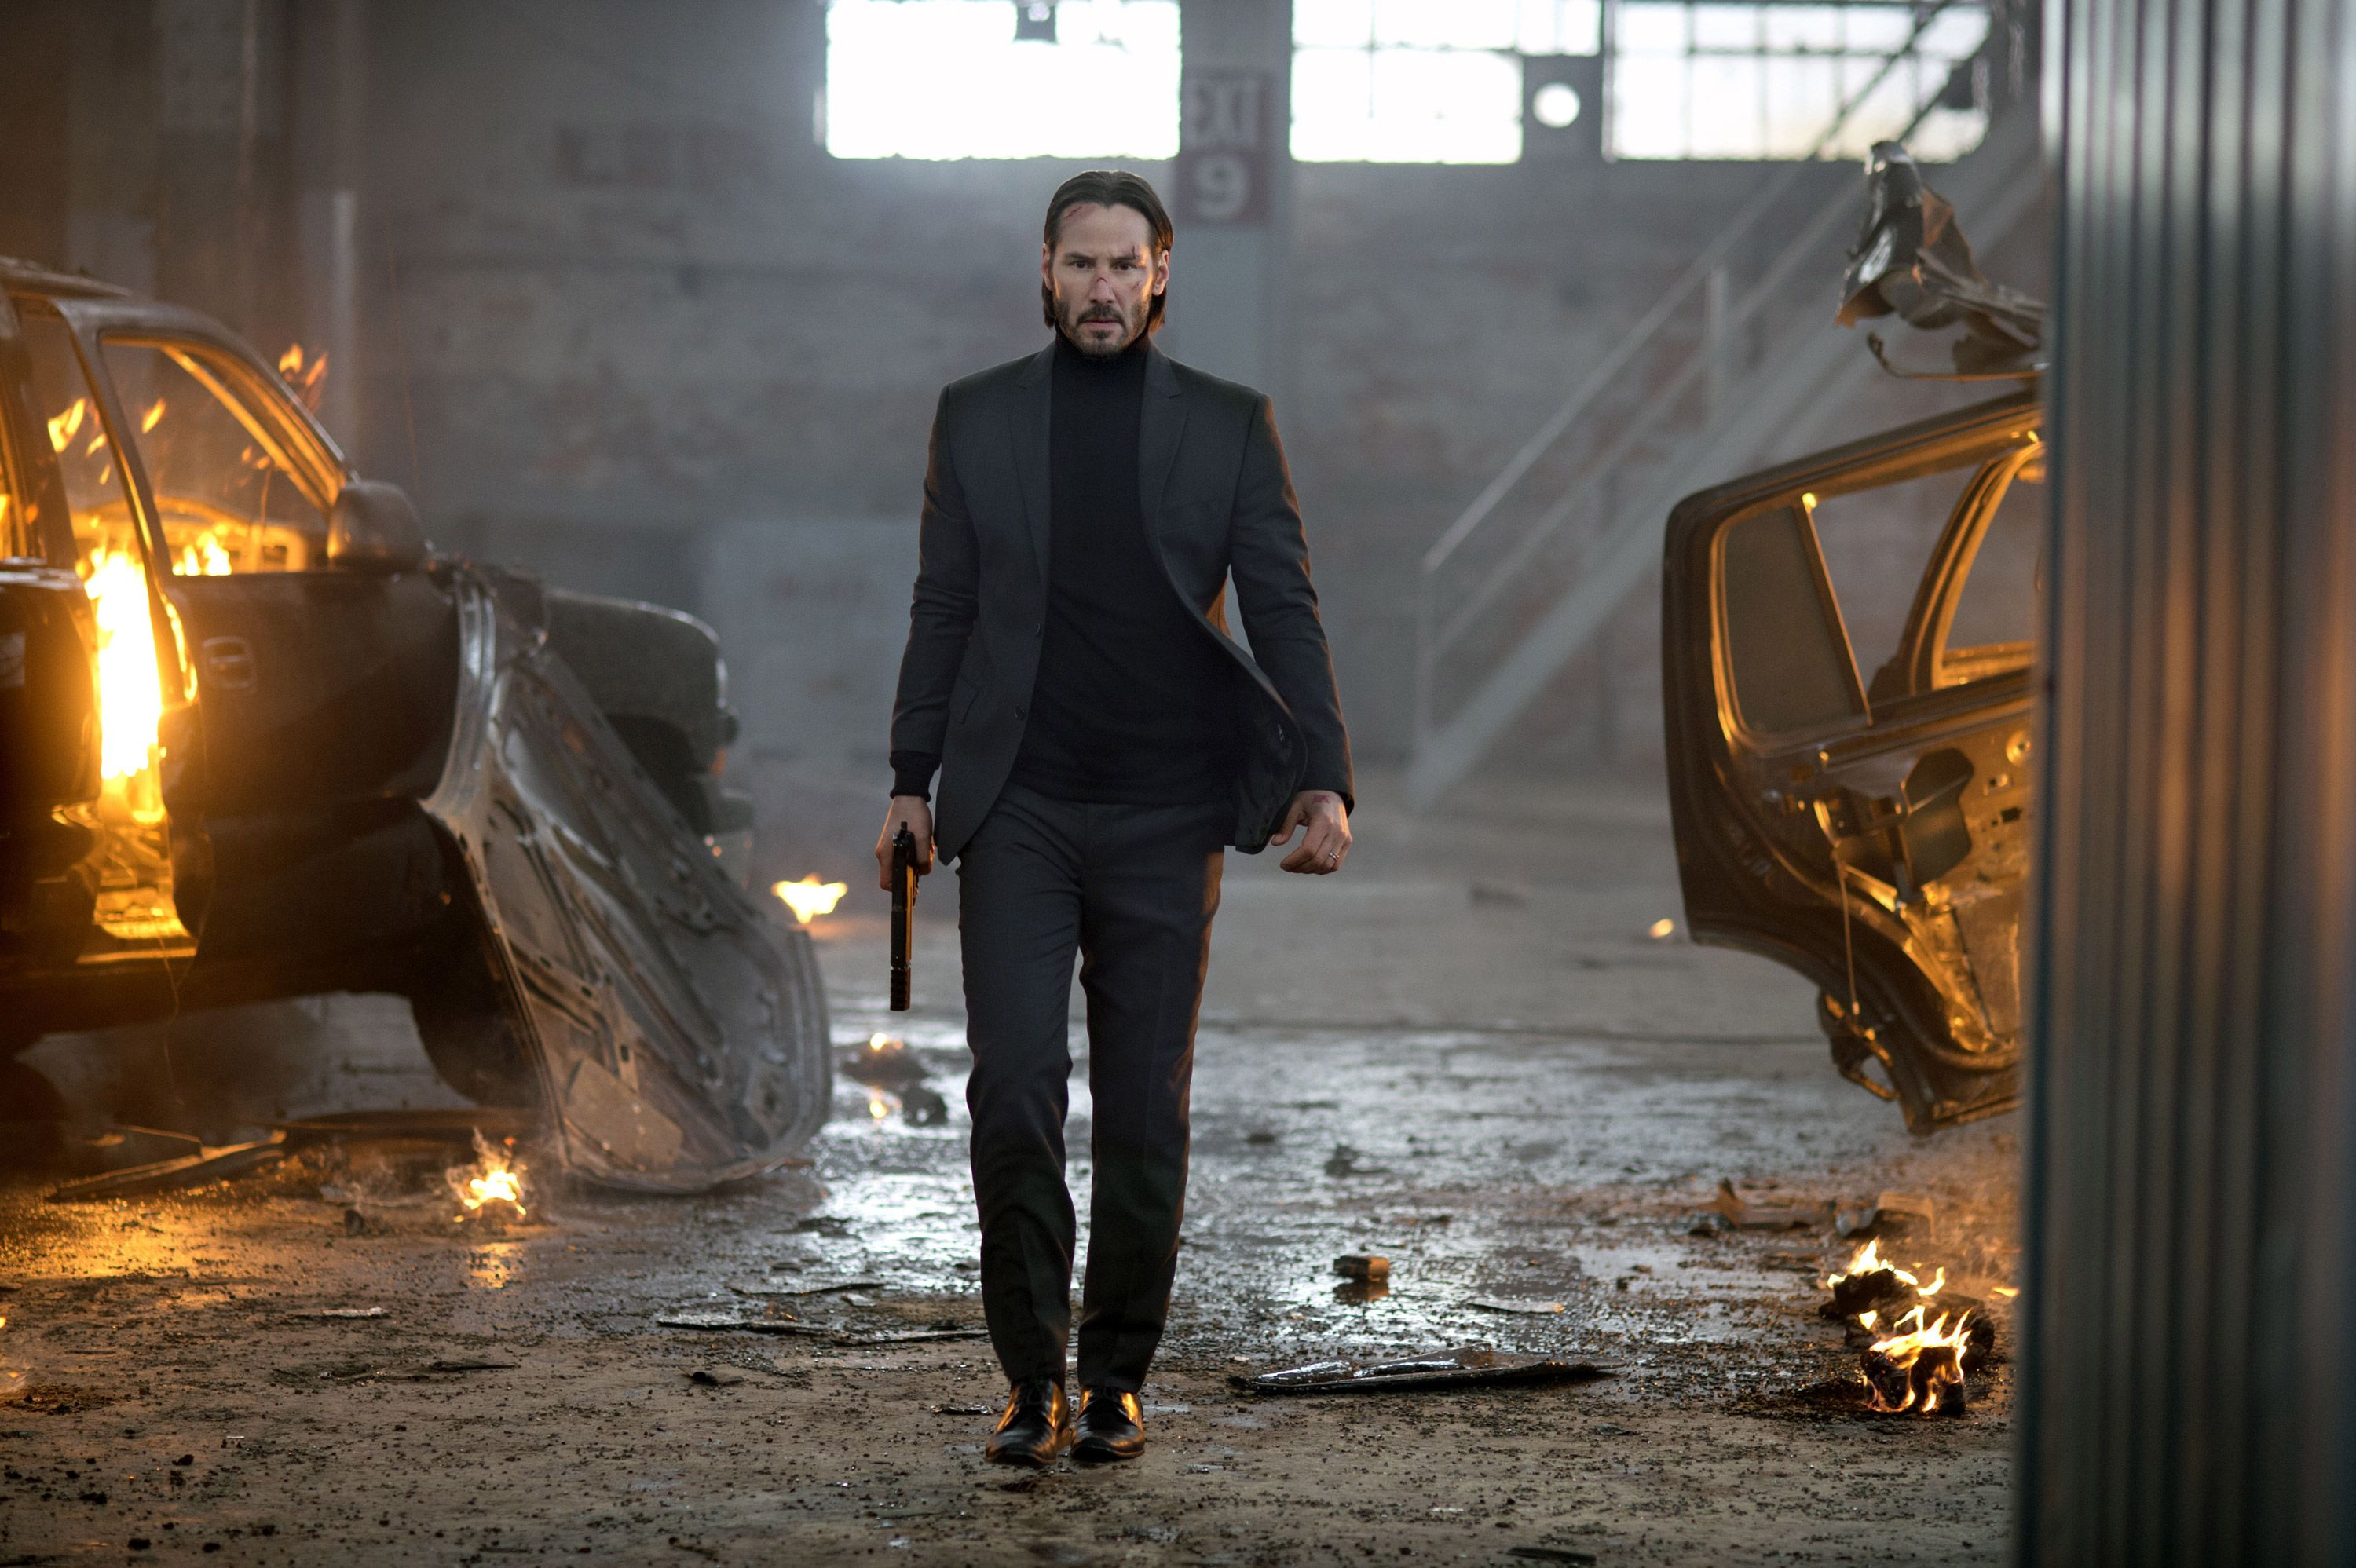 John Wick John Wick 2 Story Details Revealed by Keanu Reeves Collider